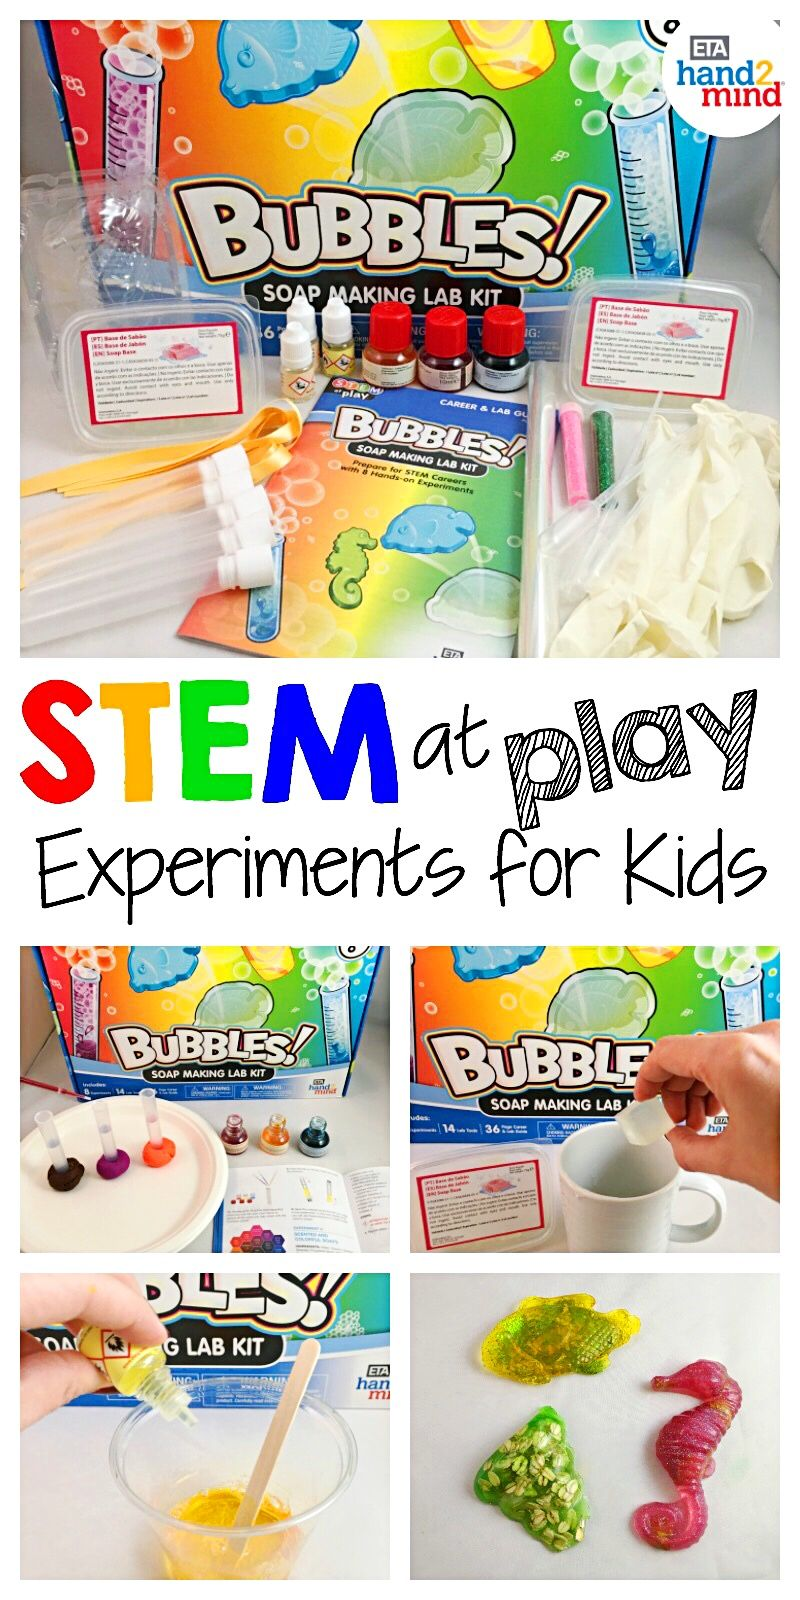 Looking For Stem Projects And Challenges Kids Building Circuit Lessons Elementary Middle School Secondary Children Engineering Activities Are Great